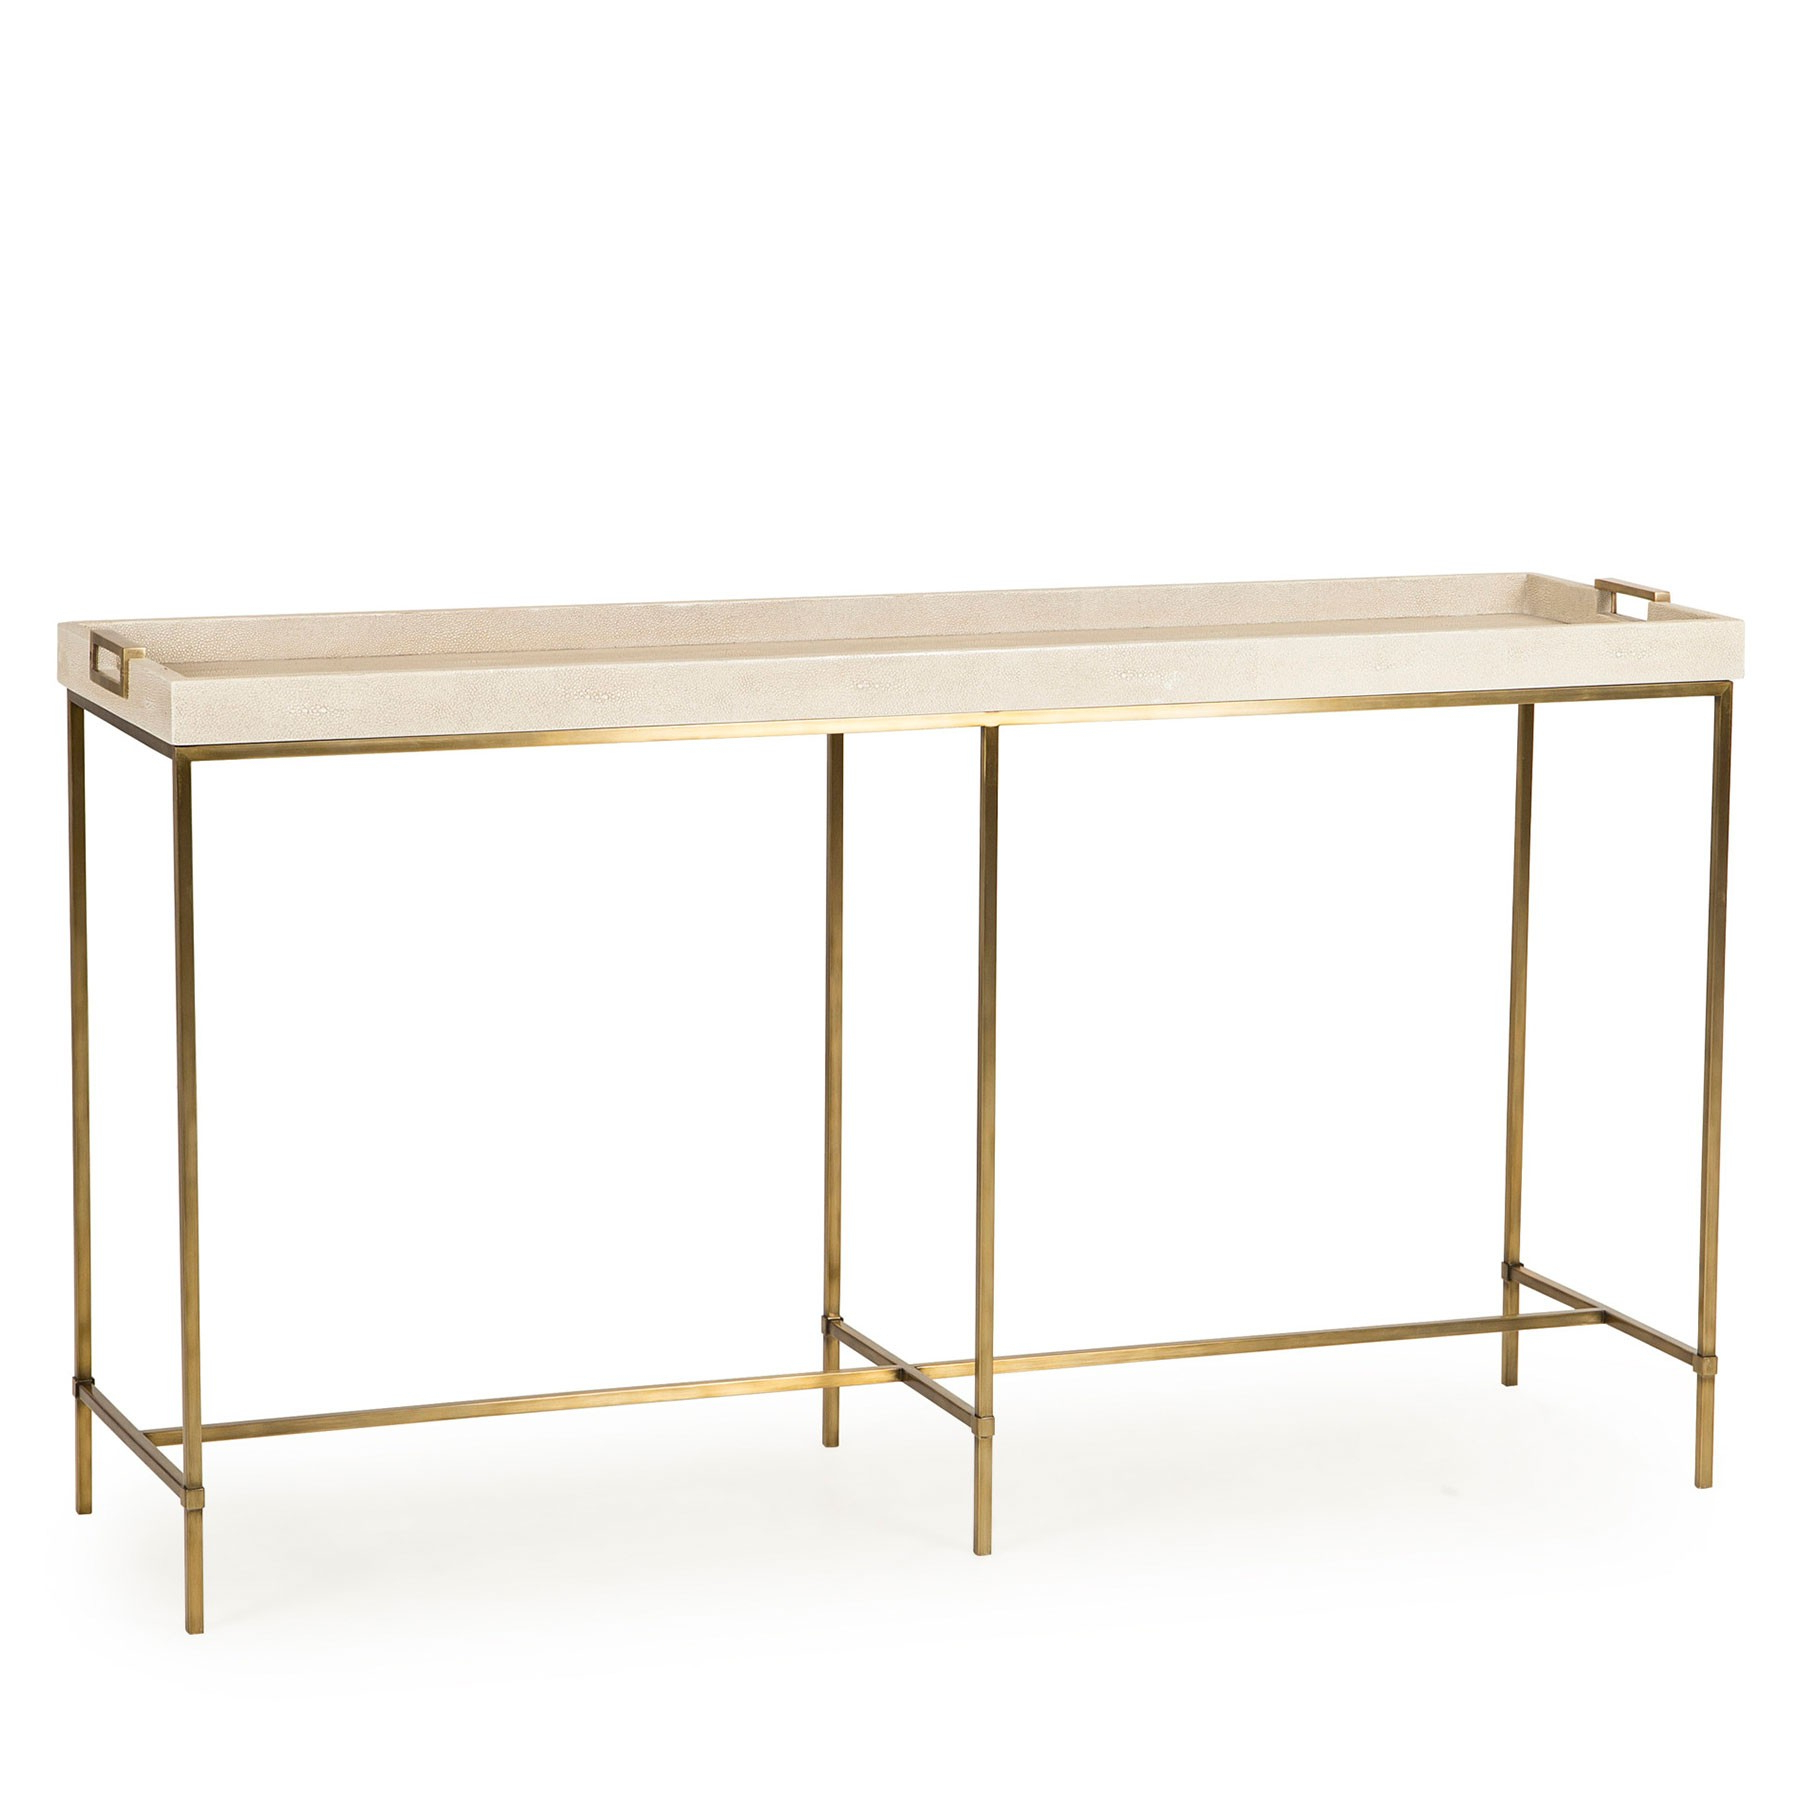 Lexi Tray Console Table – Ivory Shagreen | Resource Decor 0801085 For Faux Shagreen Console Tables (Gallery 19 of 20)